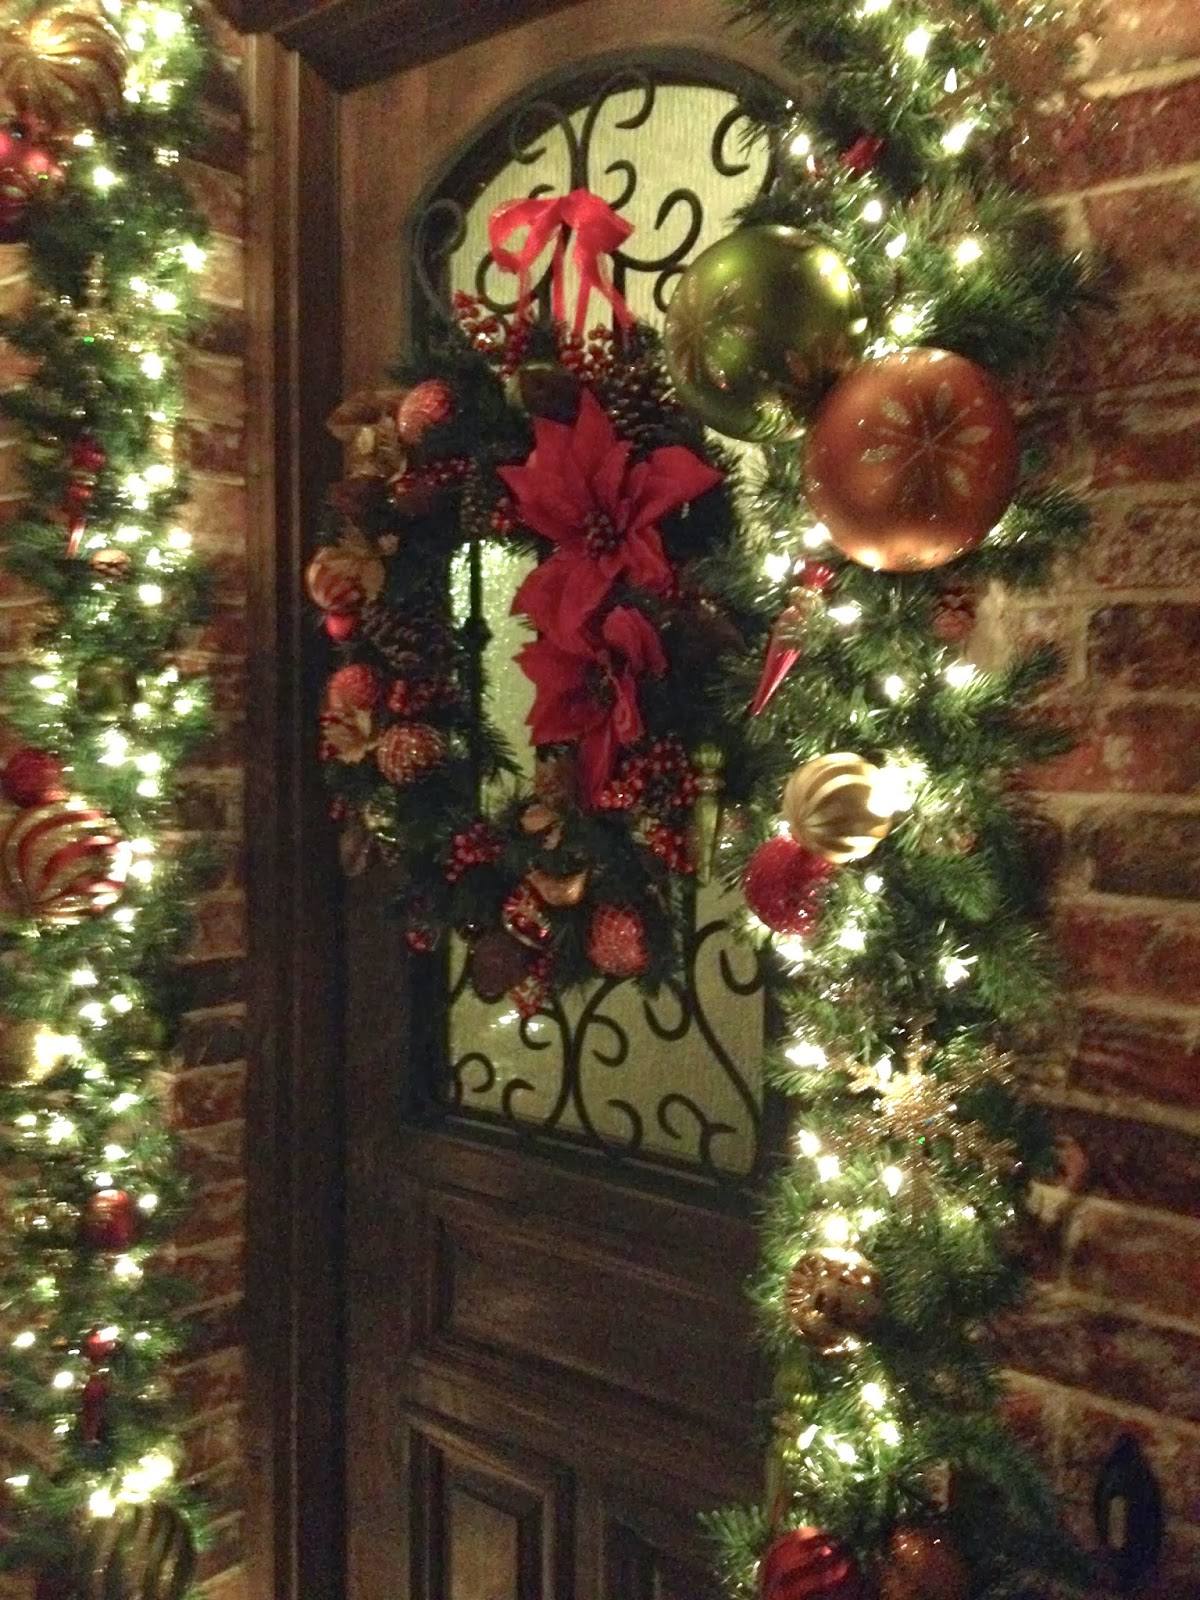 Decorate the christmas tree fa la la la -  Packs Of Shatterproof Ornaments From Costco I Was Able To Dress Up The Front Door Wreath And Garland With Glittery Old Fashioned Looking Decorations